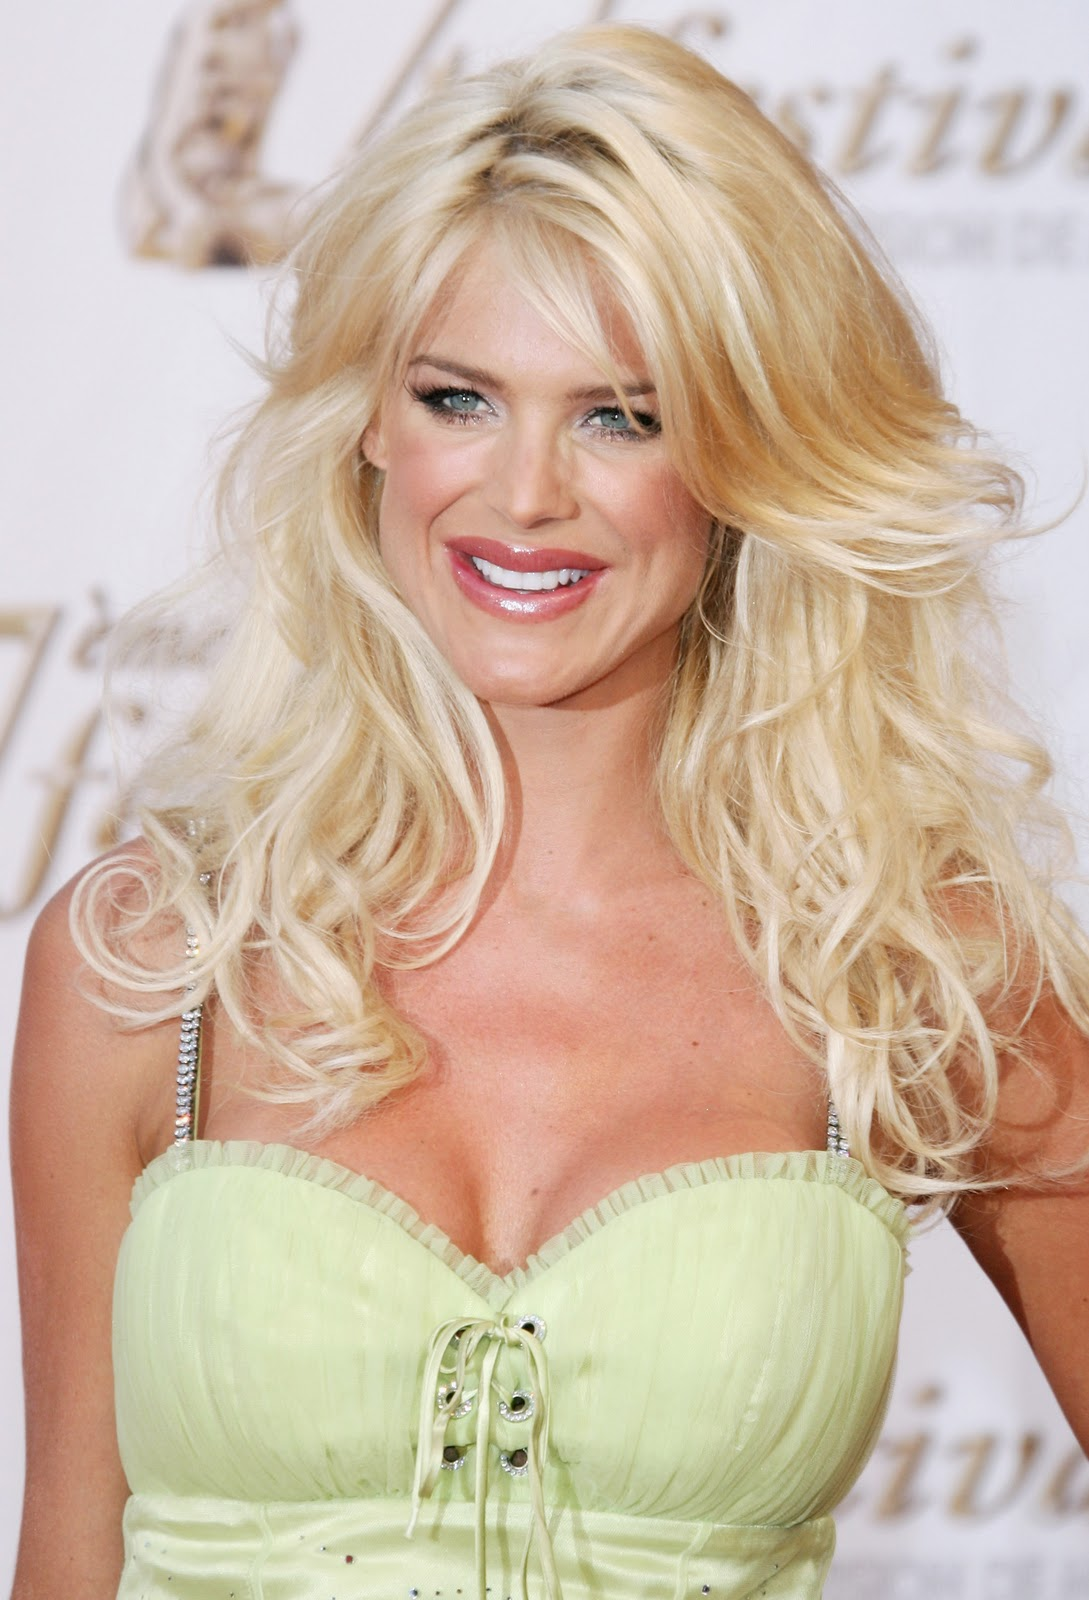 Victoria Silvstedt Nude Photos 100